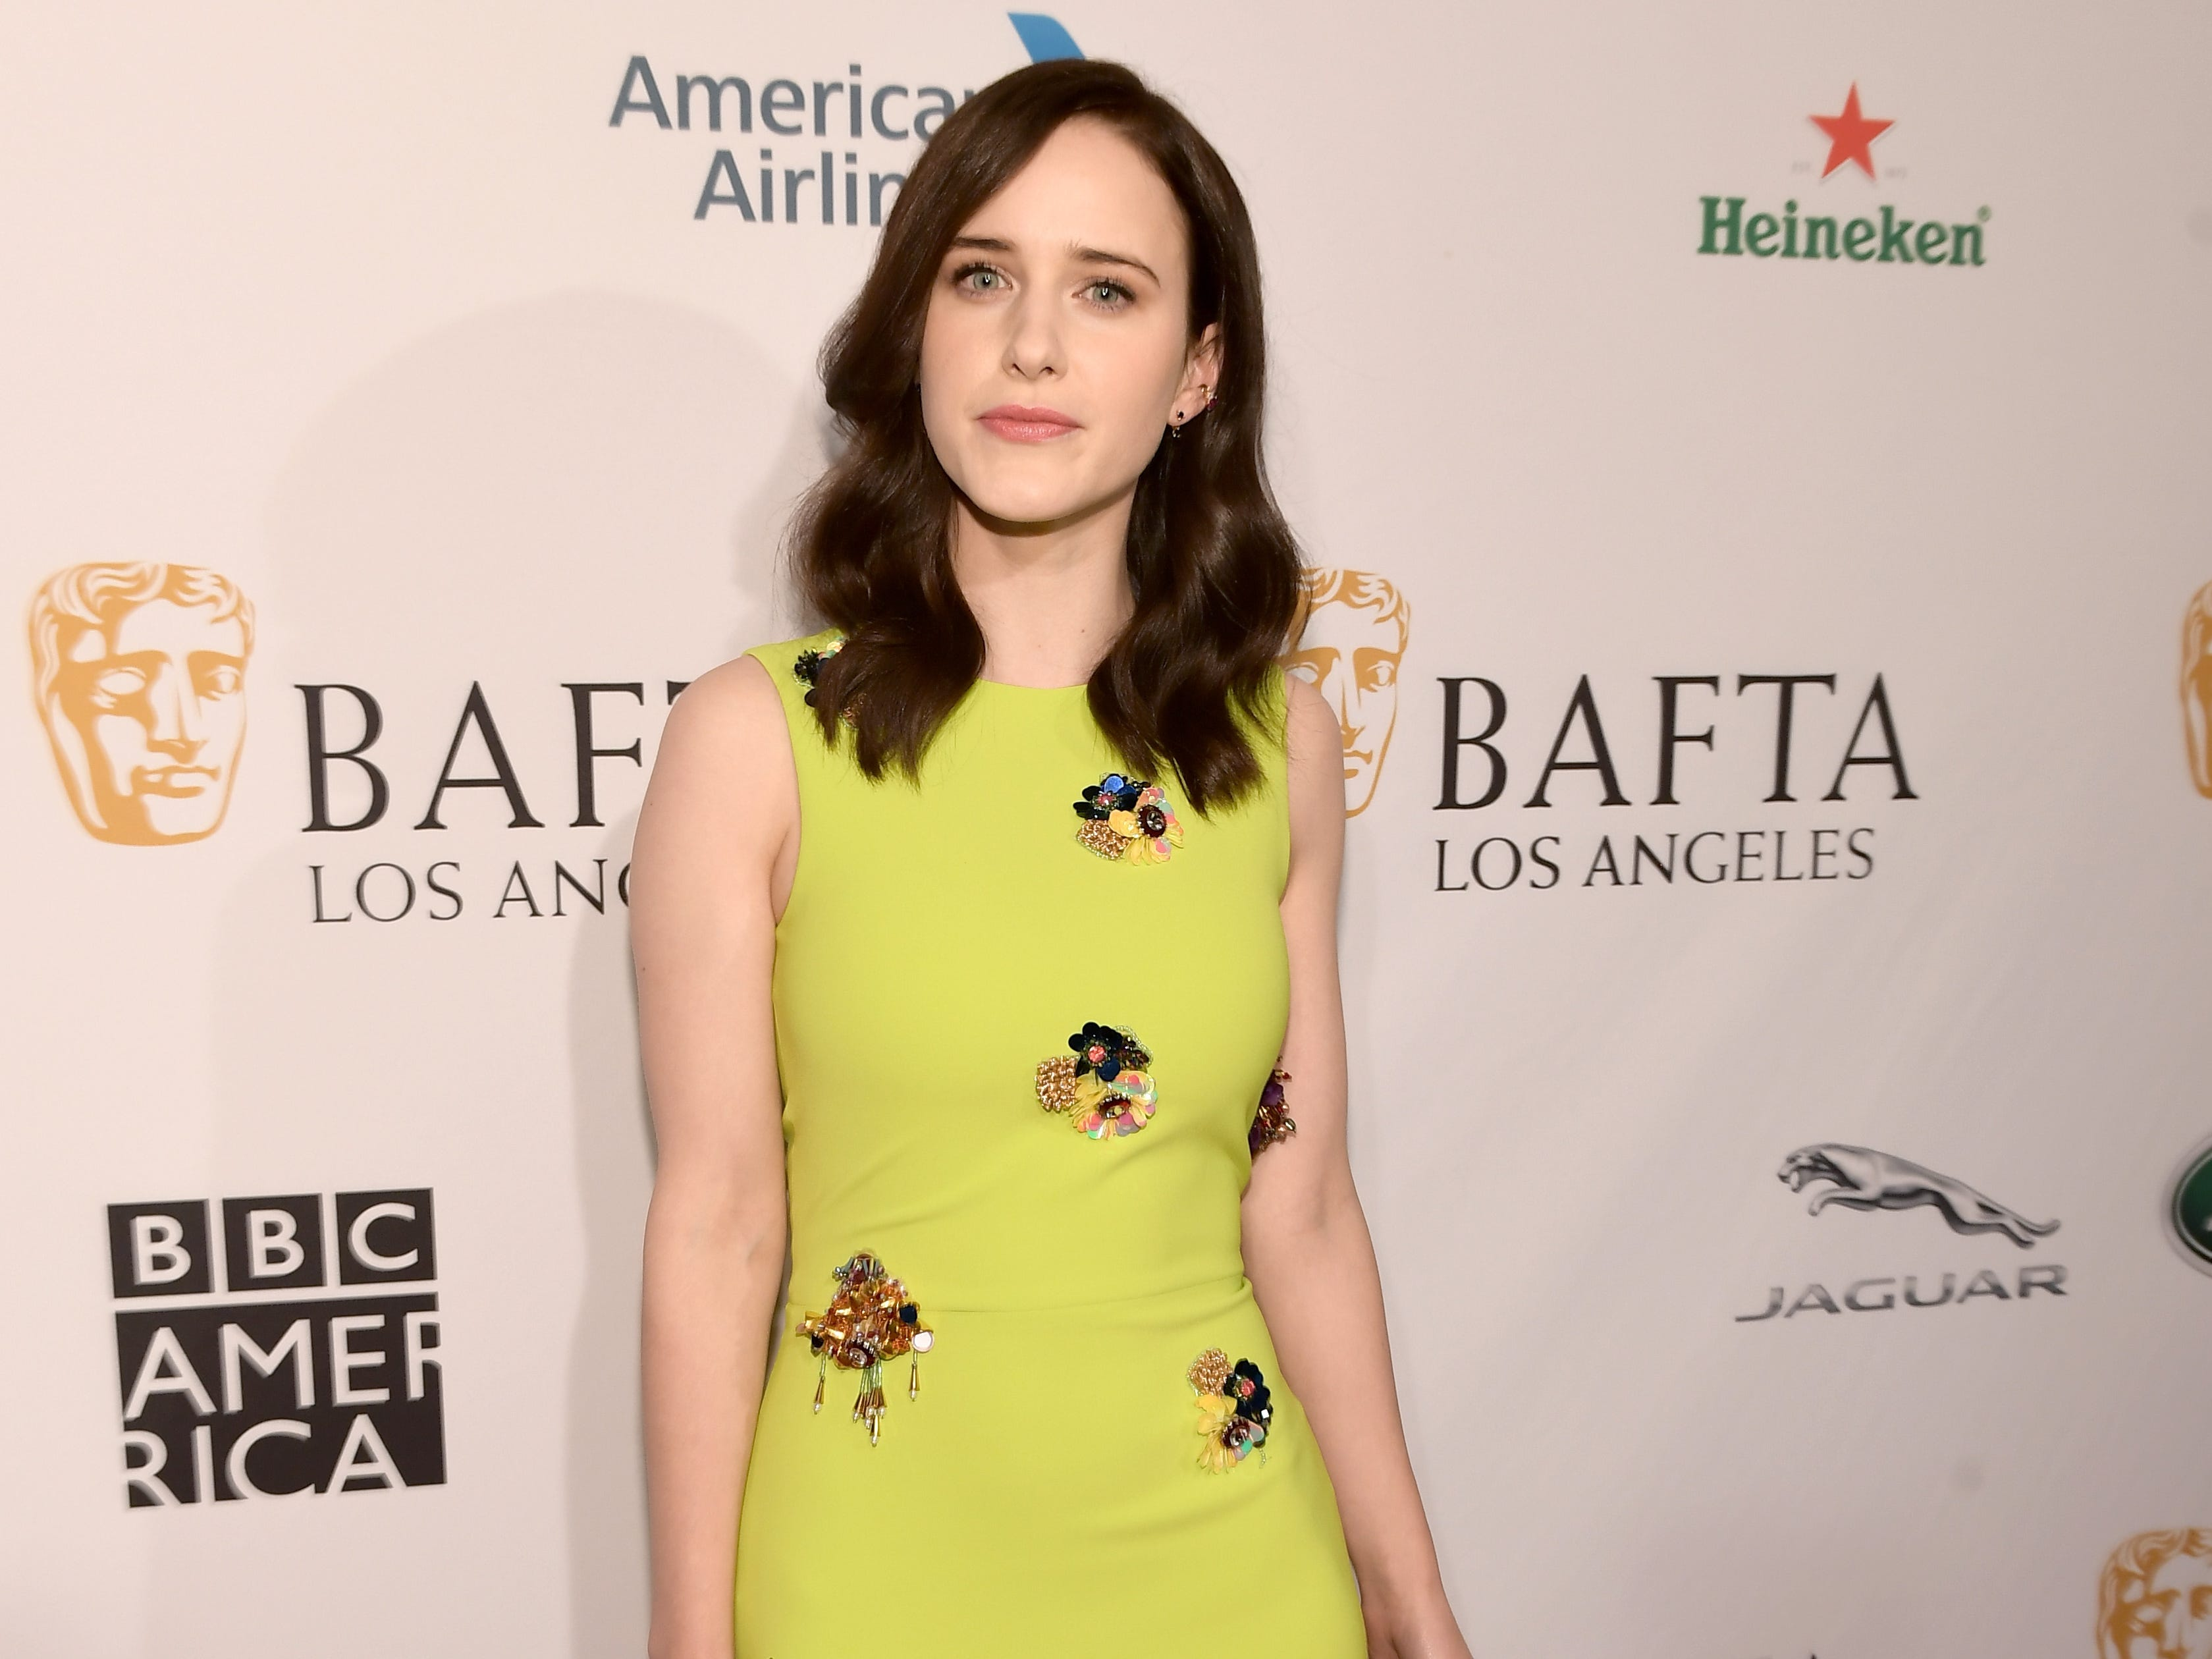 LOS ANGELES, CA - JANUARY 05:  Rachel Brosnahan attends The BAFTA Los Angeles Tea Party at Four Seasons Hotel Los Angeles at Beverly Hills on January 5, 2019 in Los Angeles, California.  (Photo by Matt Winkelmeyer/Getty Images) ORG XMIT: 775256316 ORIG FILE ID: 1077925674